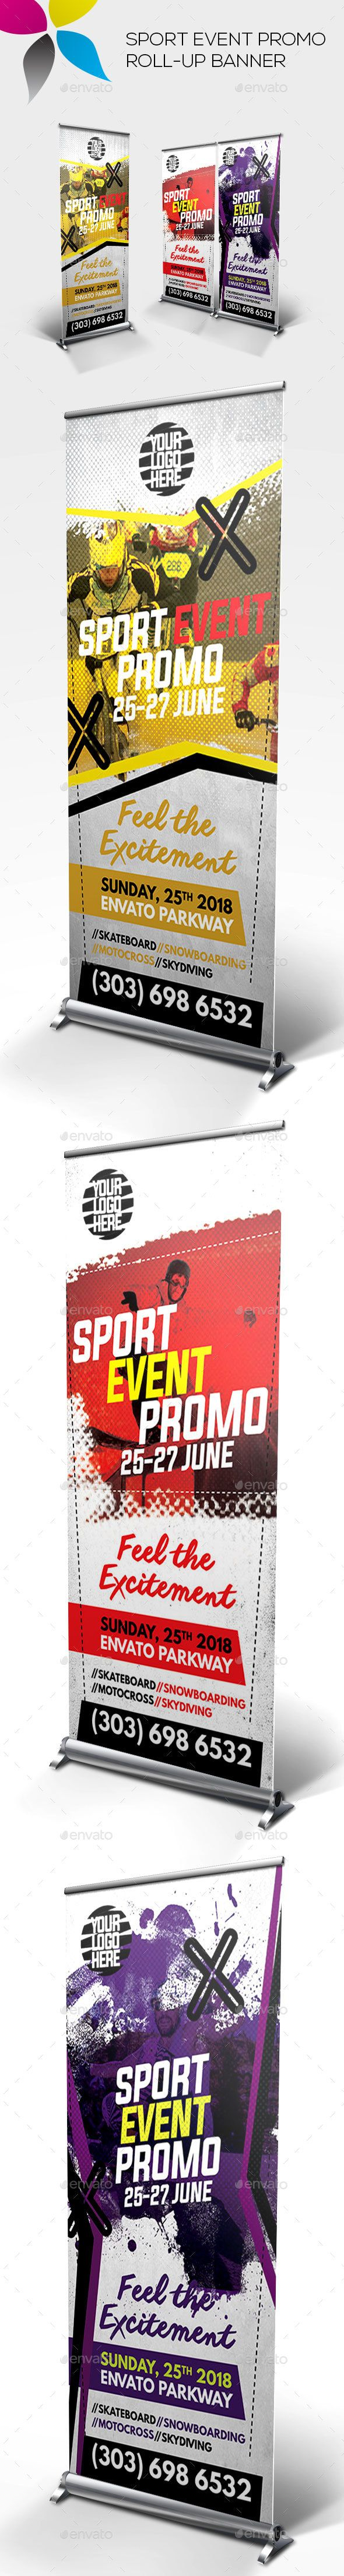 Sport Event Promo Roll-up Banner by inddesigner Banner size 30x70in Bleed 1in Adobe Photoshop CC CMYK 100dpi Info file included Photos used in the preview are not included